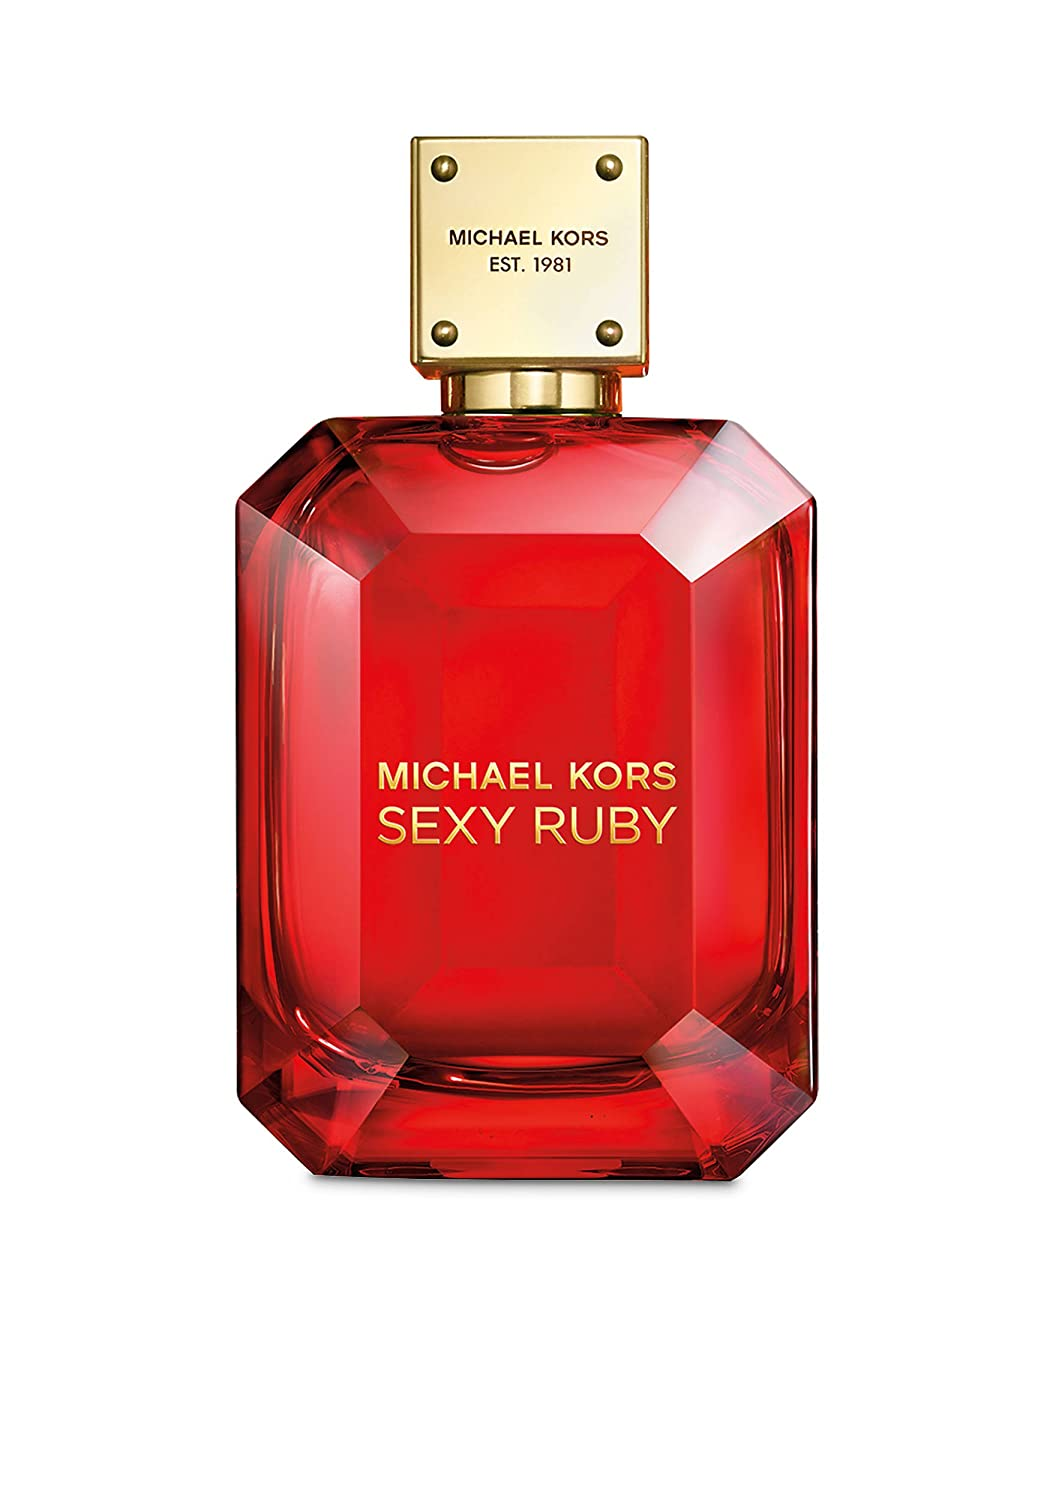 Amazon.com : Michael Kors Sexy Ruby Eau De Parfum Spray For Women 1.0 Oz / 30 ml Brand New In Box Sealed : Beauty